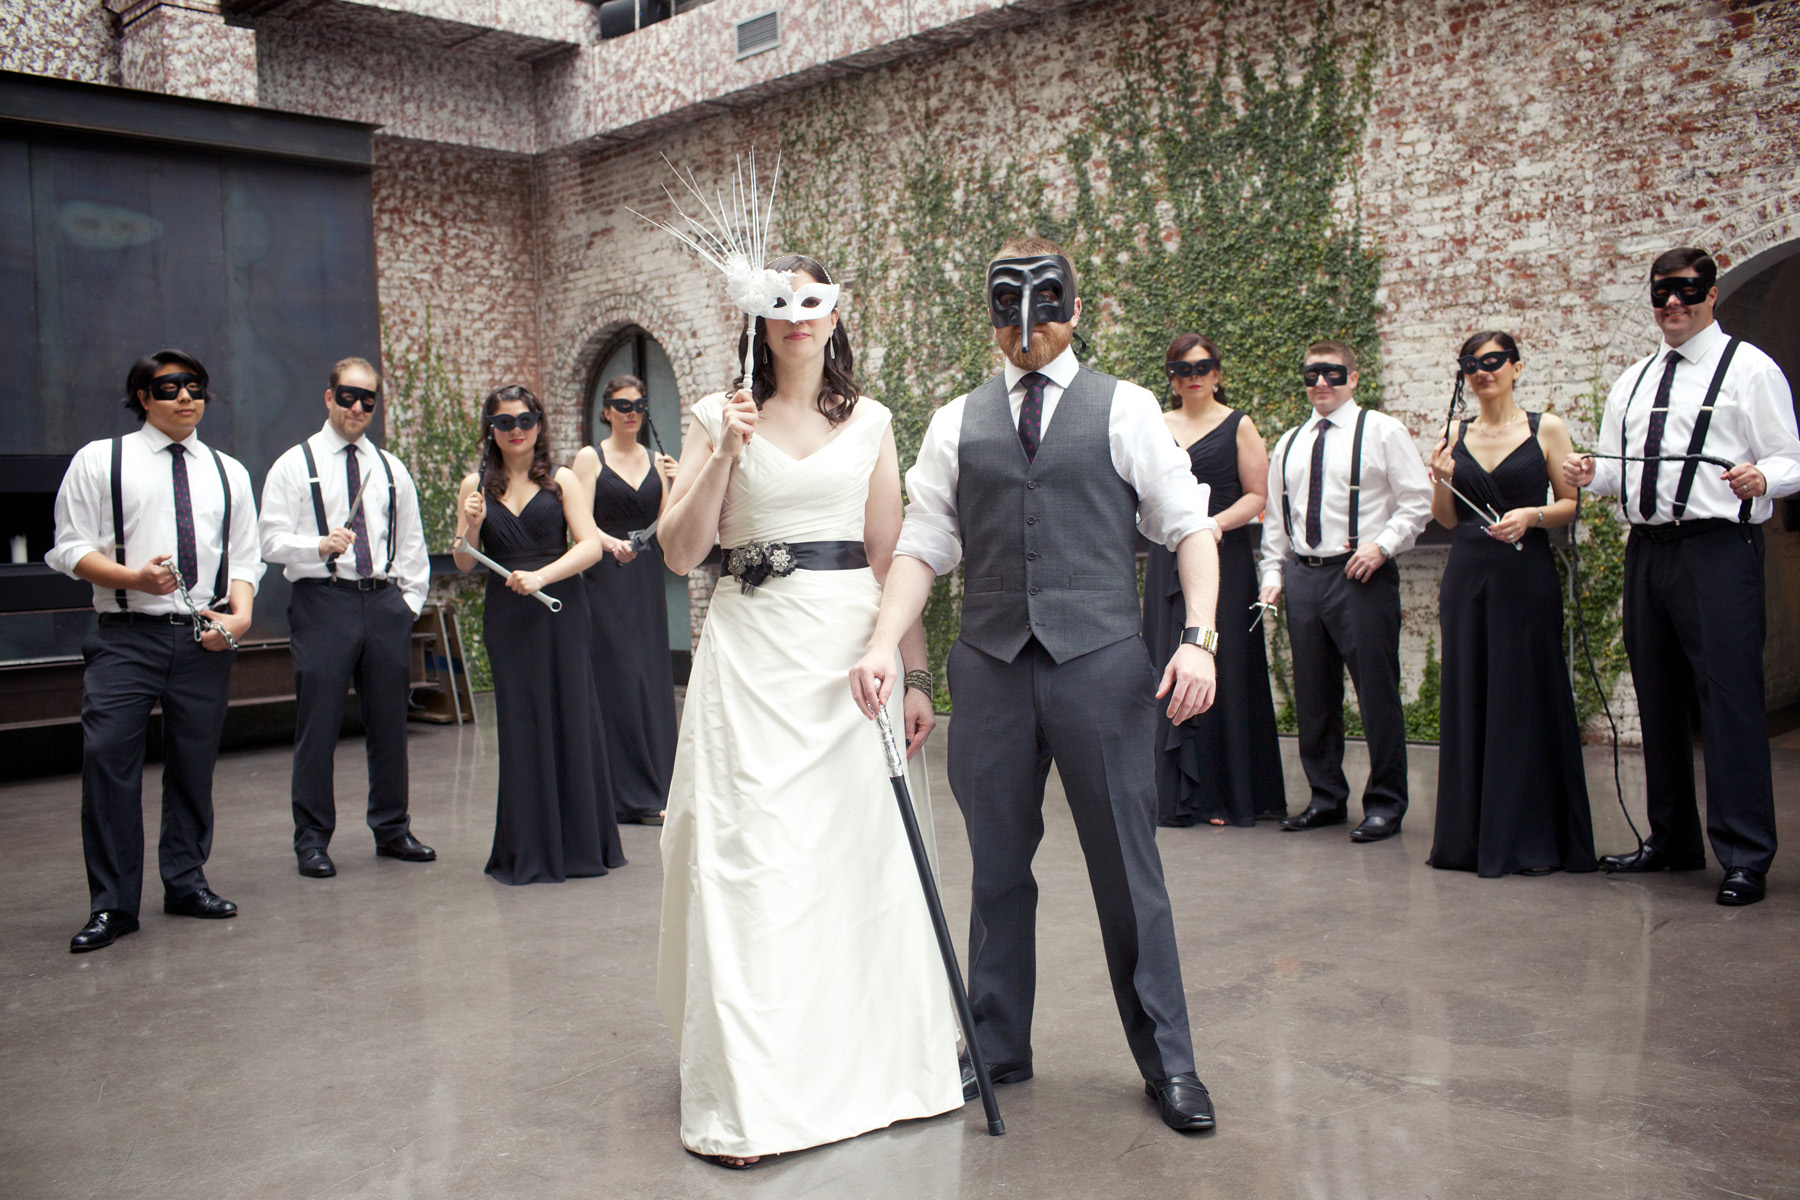 Nothing beats a masked wedding party.